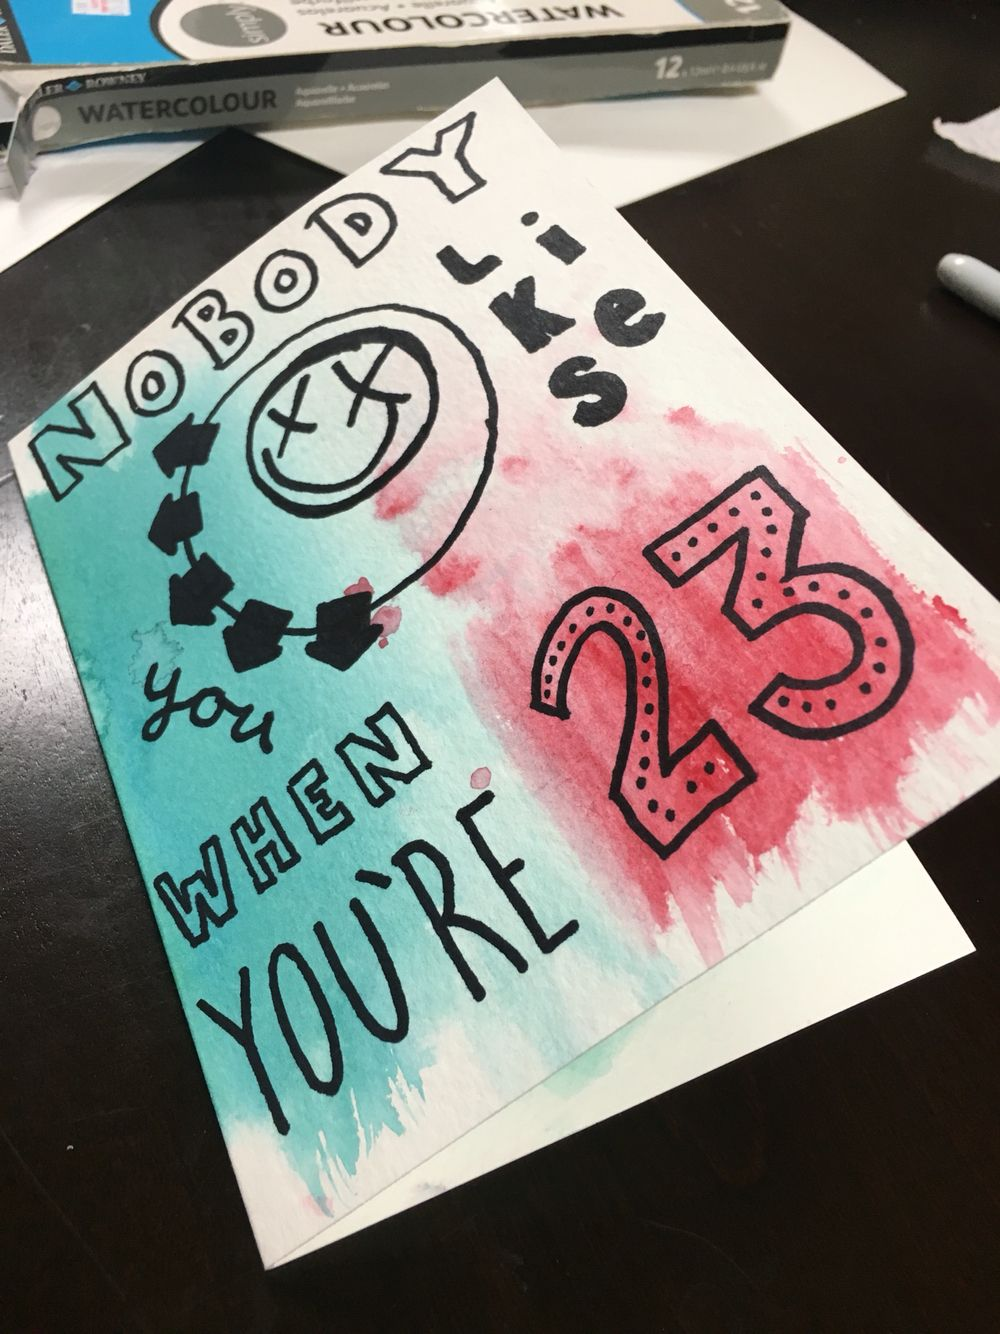 Handmade Diy Watercolor Card For Those 23 Year Olds In Your Life Blink 182 Whats